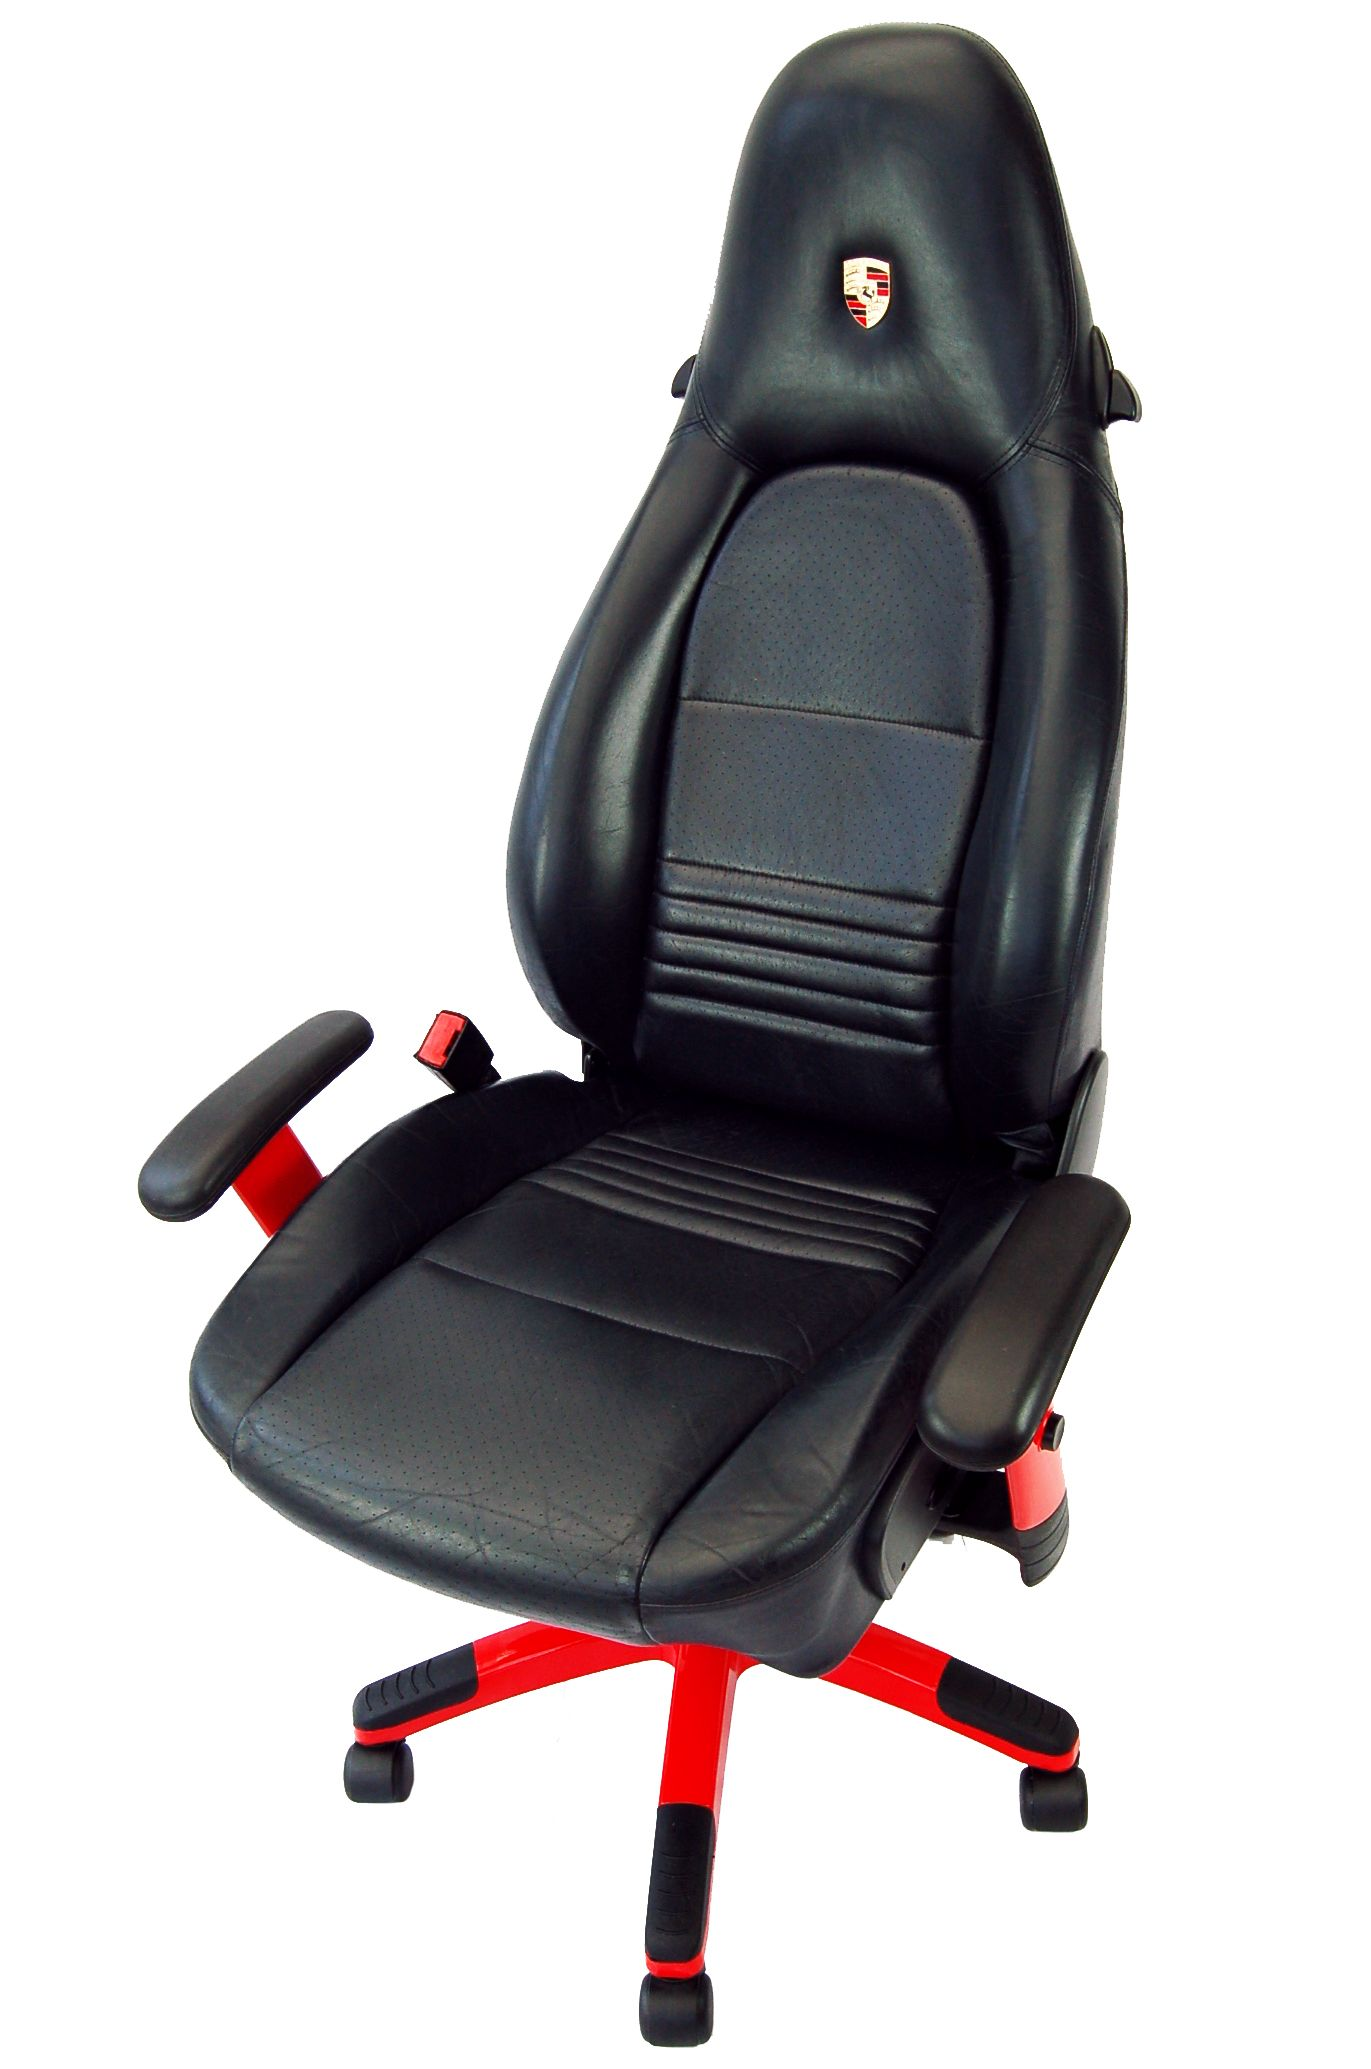 Enter This Clutch Chair & Fortnite VBucks Giveaway! This